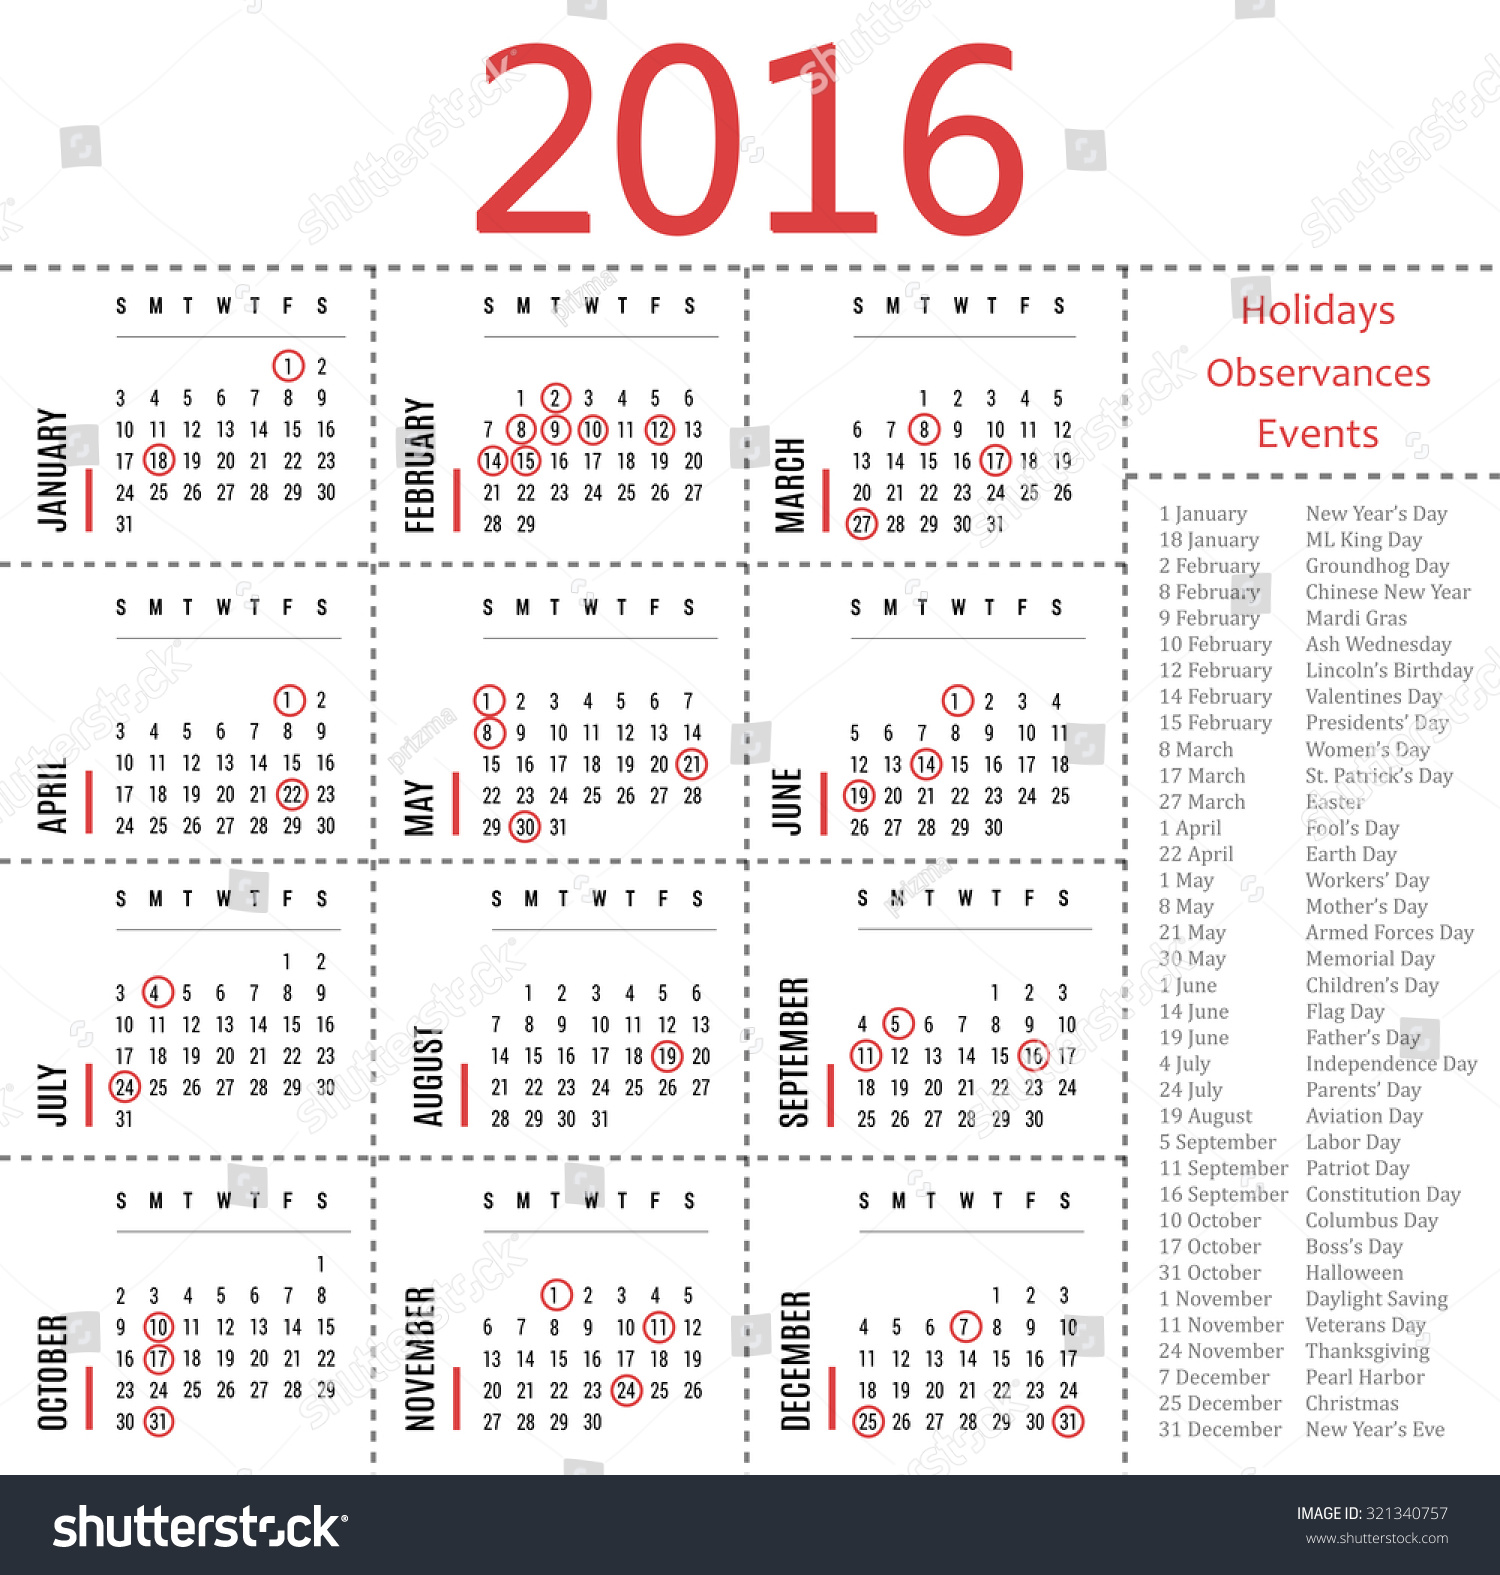 2016 Calendar Template With Holidays, Observances And Events Stock ...